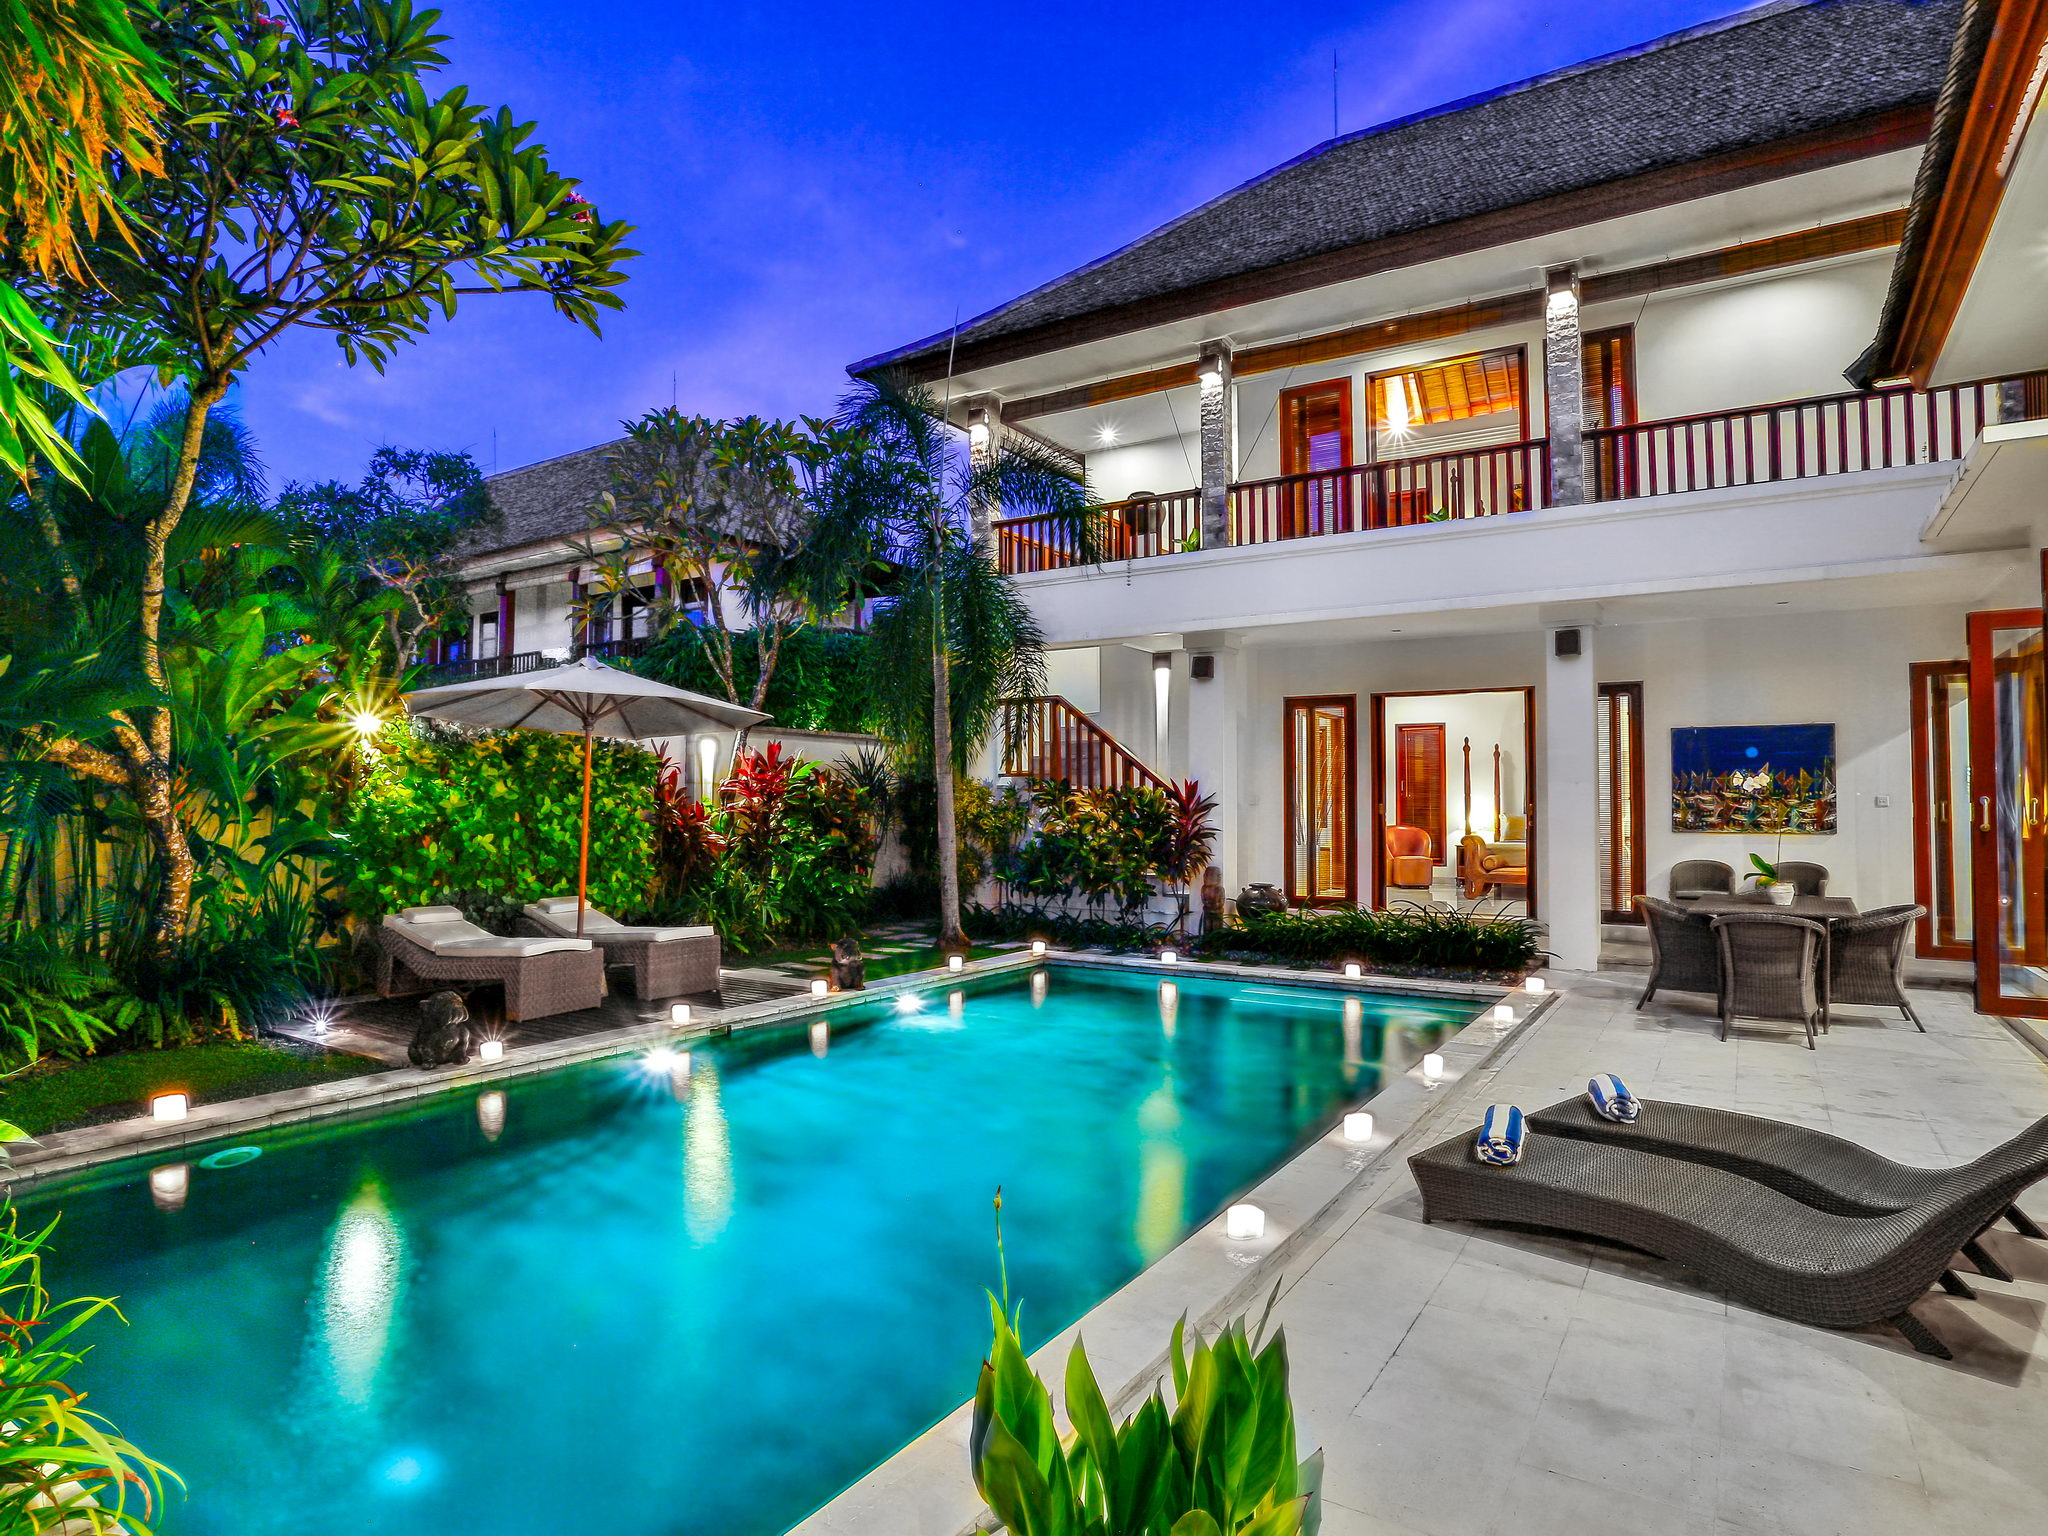 Floor Plans For 5 Bedroom Homes Shanti Villa In Seminyak Bali Indonesia 4 Bedrooms